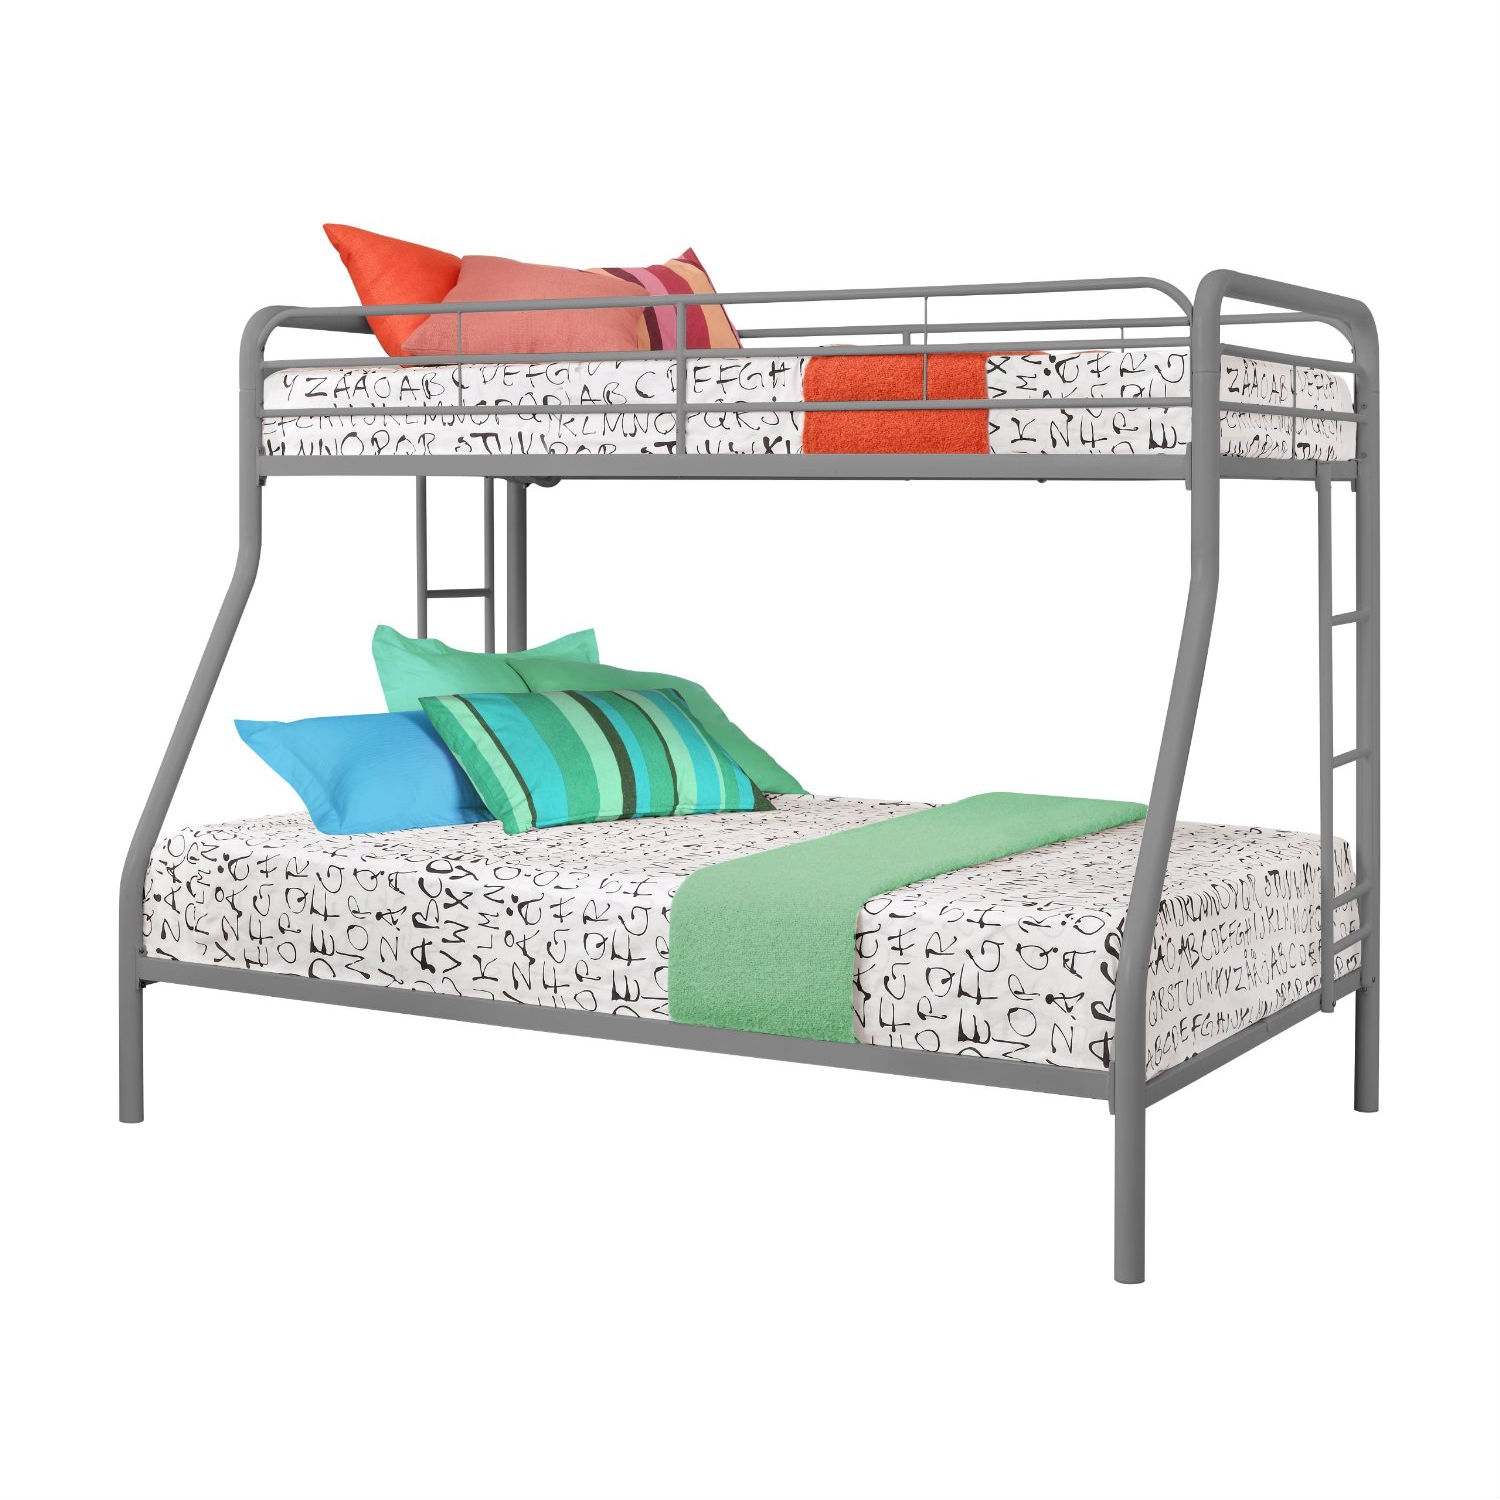 Twin over Full size Sturdy Metal Bunk Bed in Silver Finish, DSTFB1981 :     This Twin over Full size Sturdy Metal Bunk Bed in Silver Finish has a twin bed on the top with a full size bottom bunk bed. It is a great sleeping solution if one child is three to five years older than the other child or if one sibling needs more room.